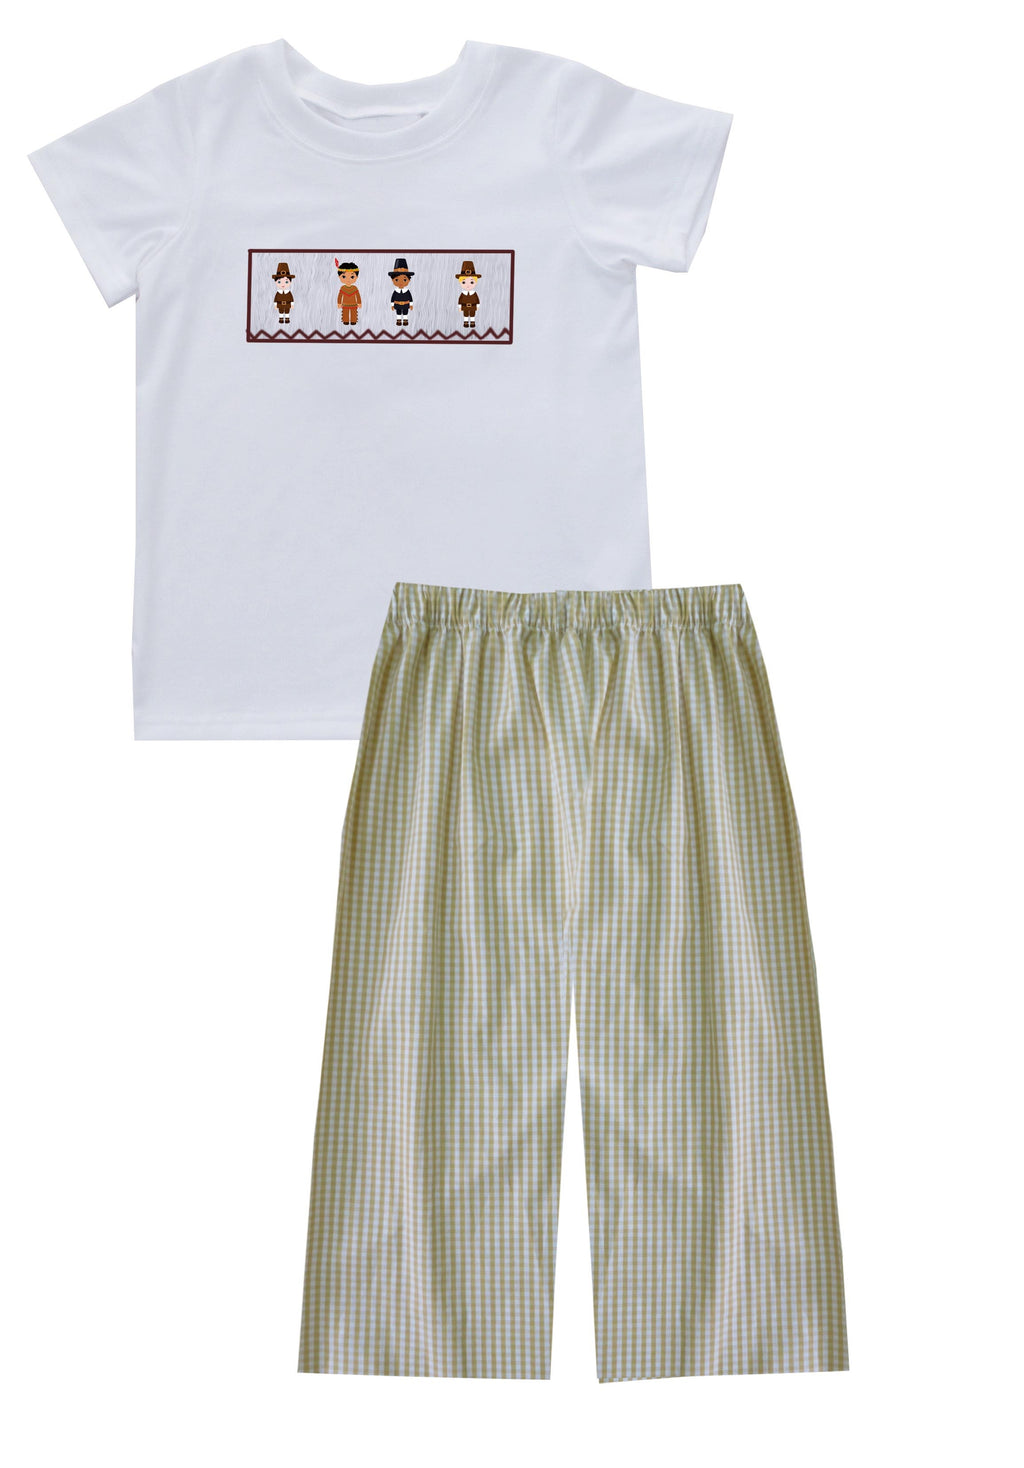 2019 Pilgrim and Indian Boy Pant Set with White shirt